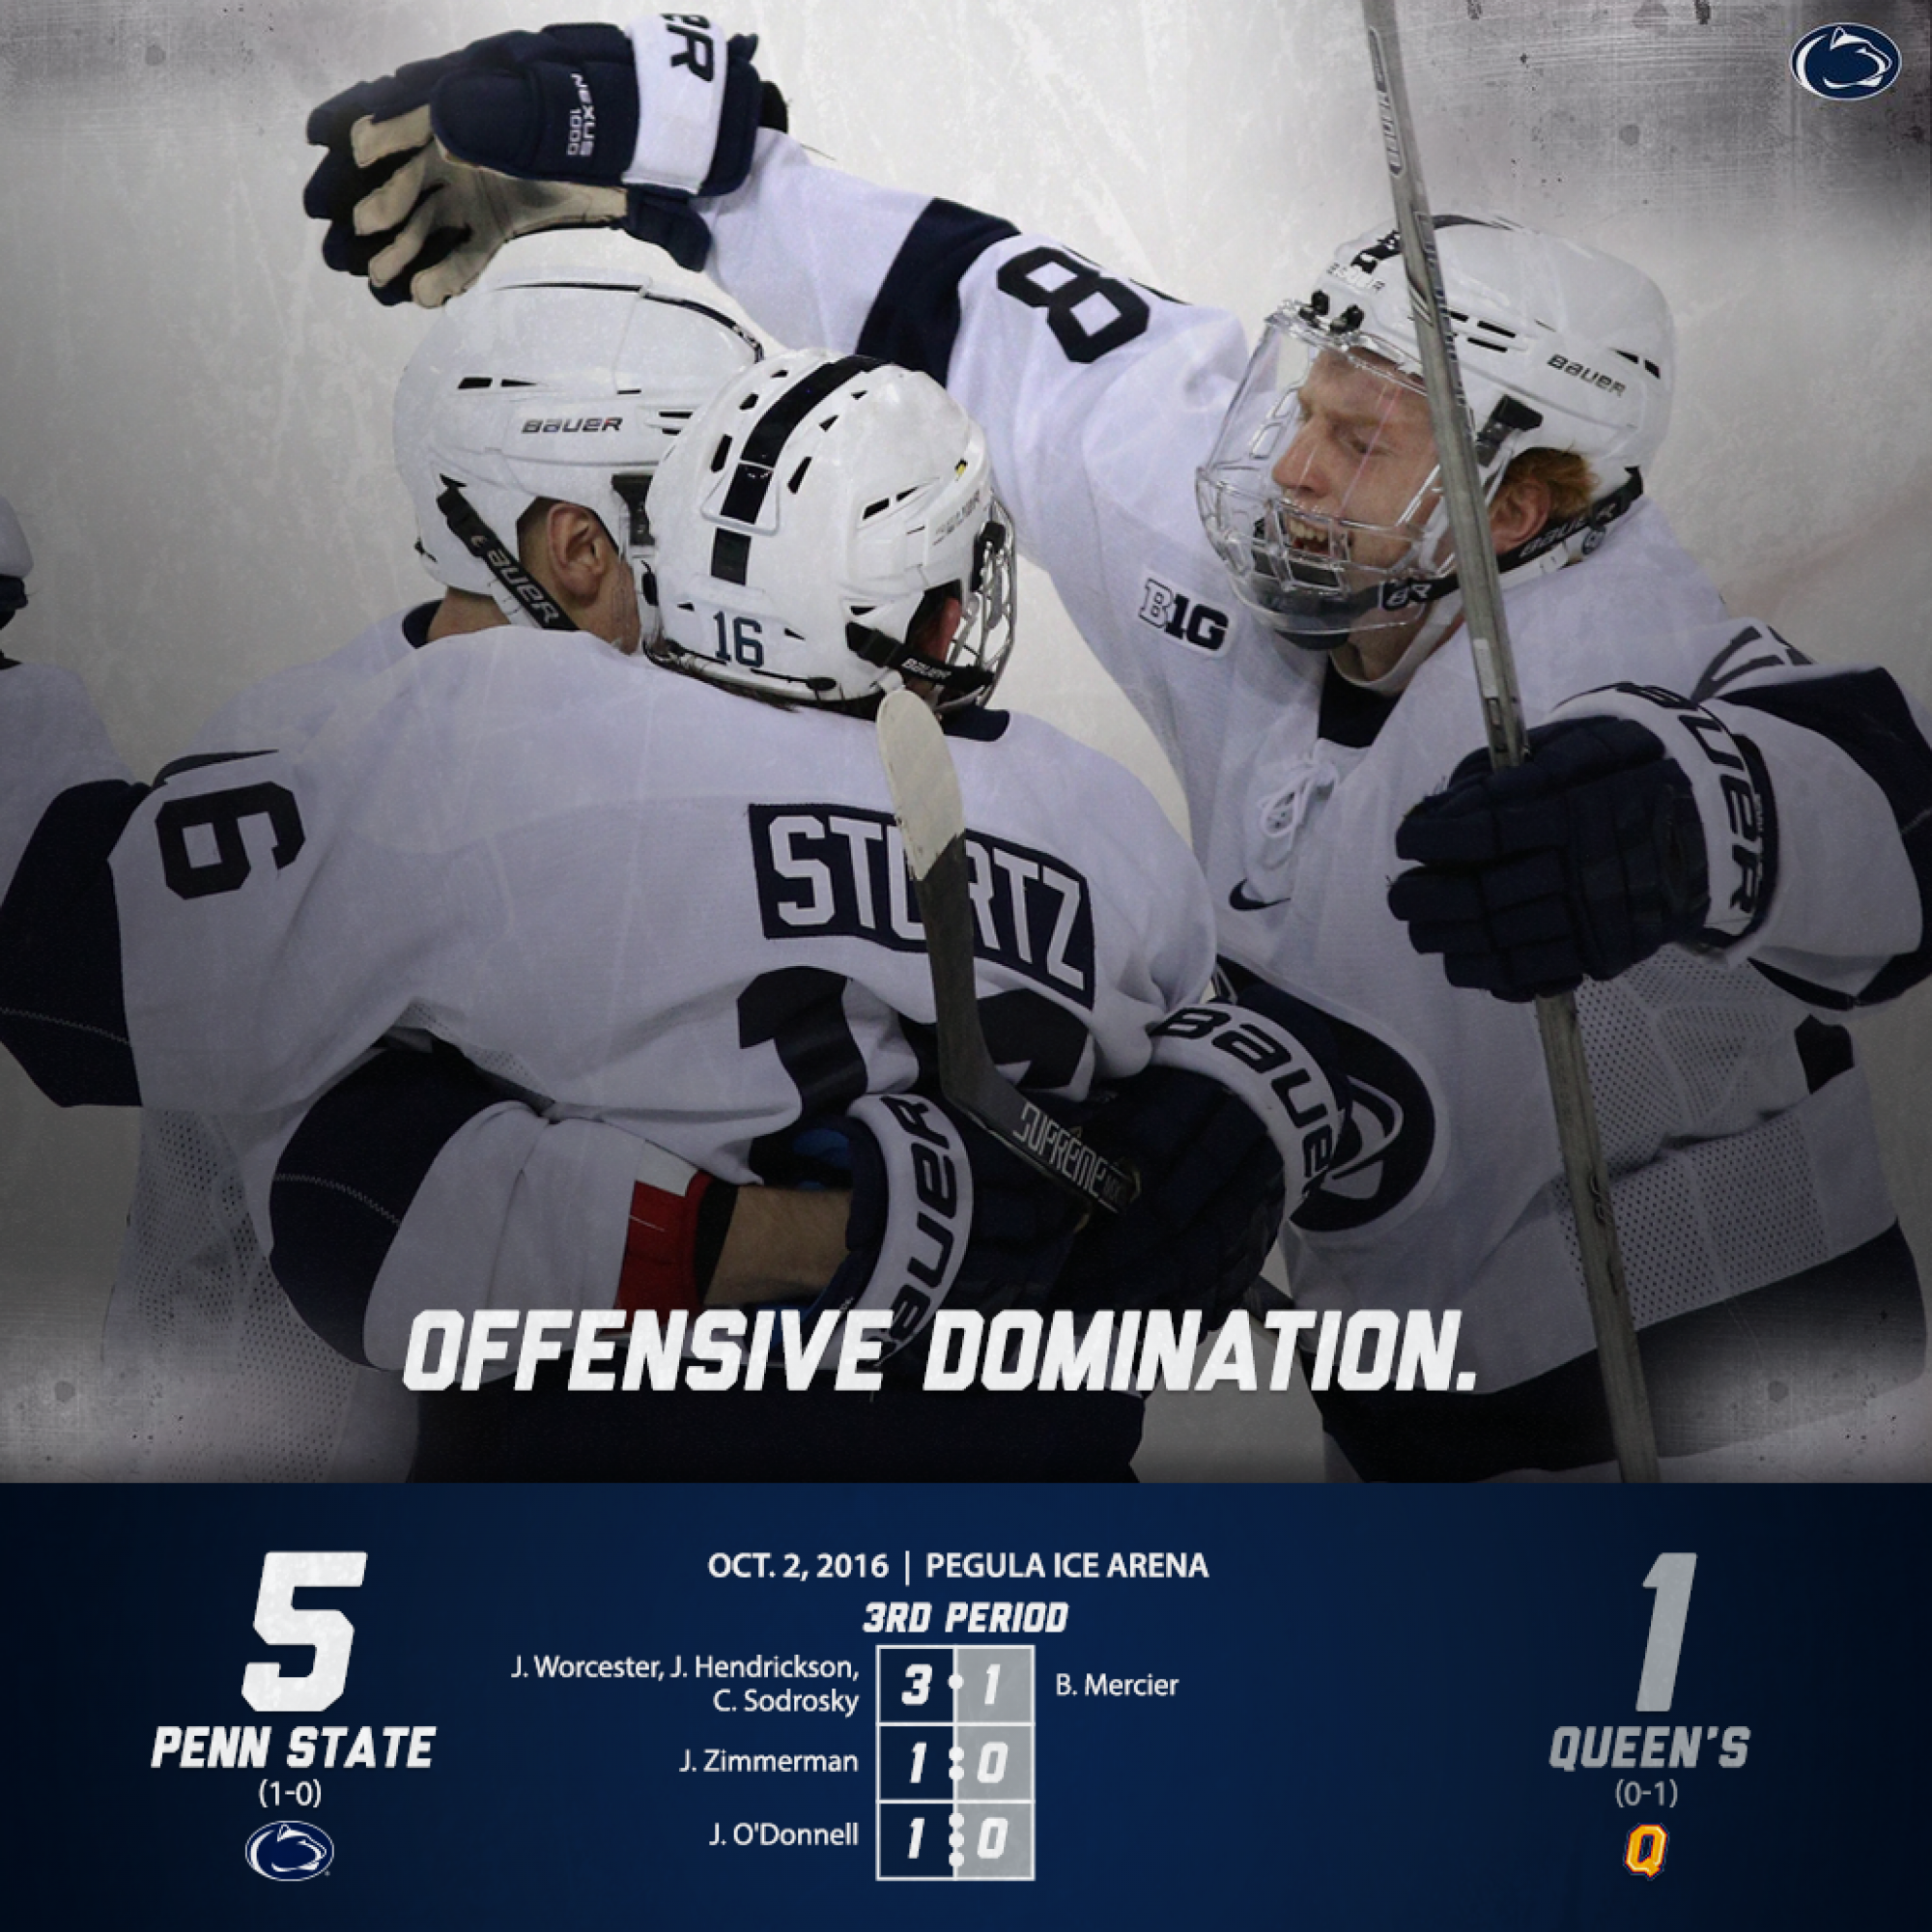 penn_state_m_hockey_snapshot_square_score_01_sample